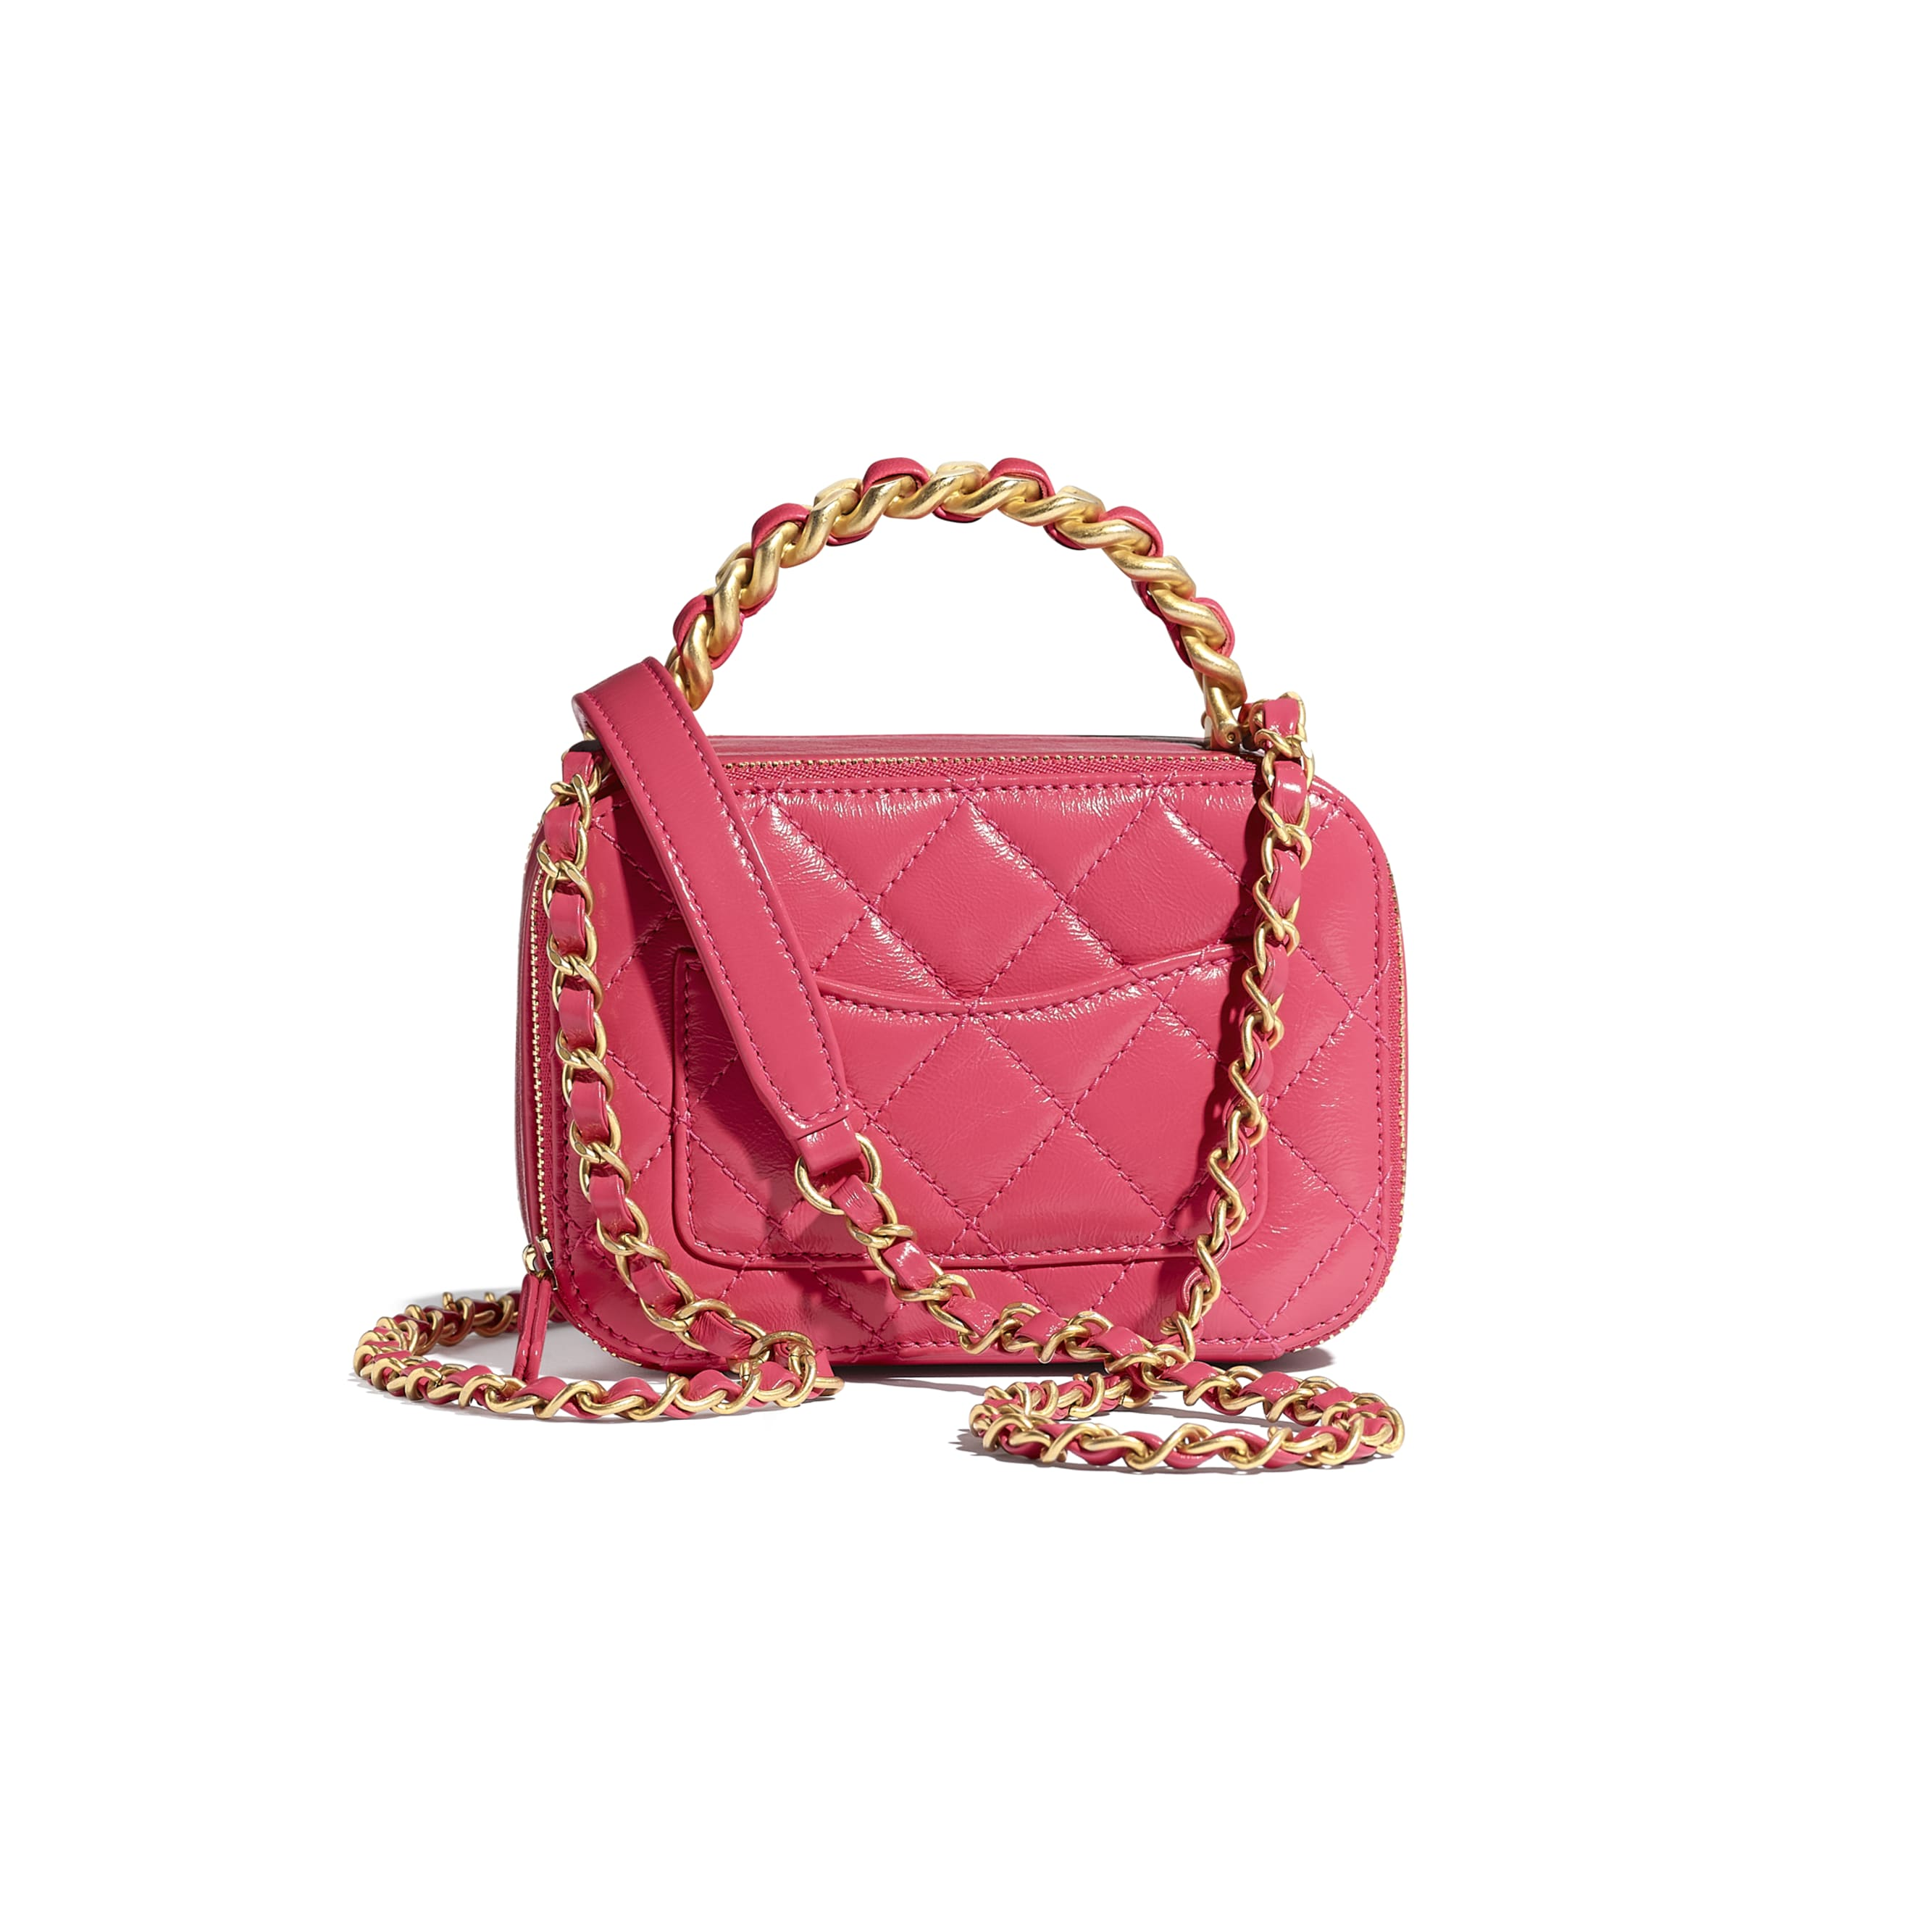 Small Vanity Case - Pink - Lambskin, Shiny Crumpled Calfskin & Gold-Tone Metal - CHANEL - Alternative view - see standard sized version